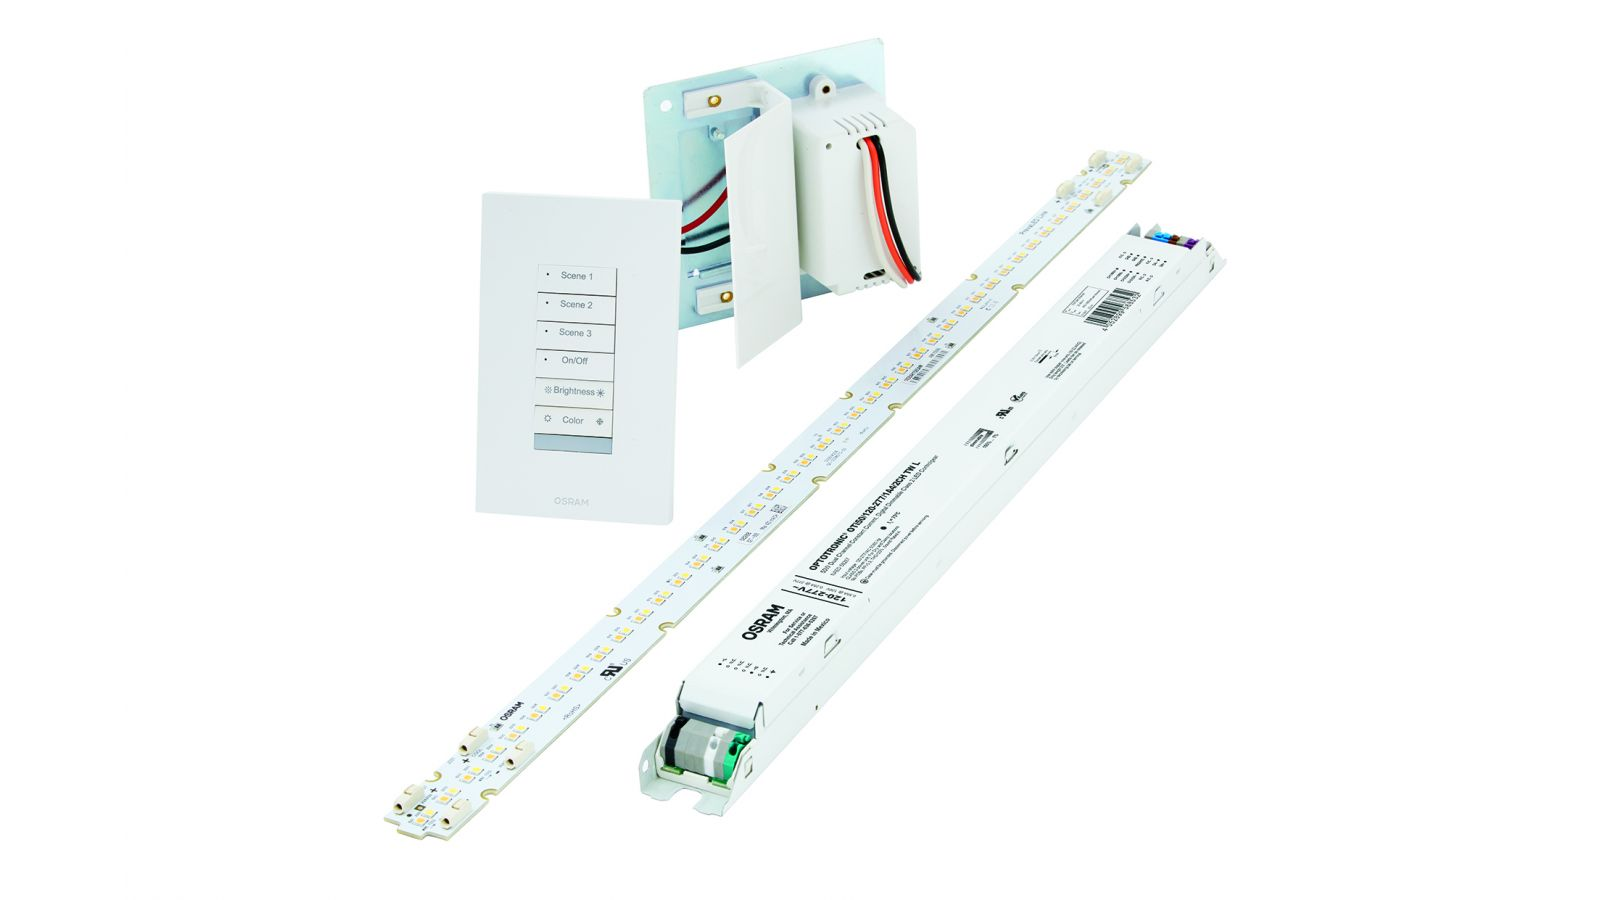 OSRAM Tunable White System